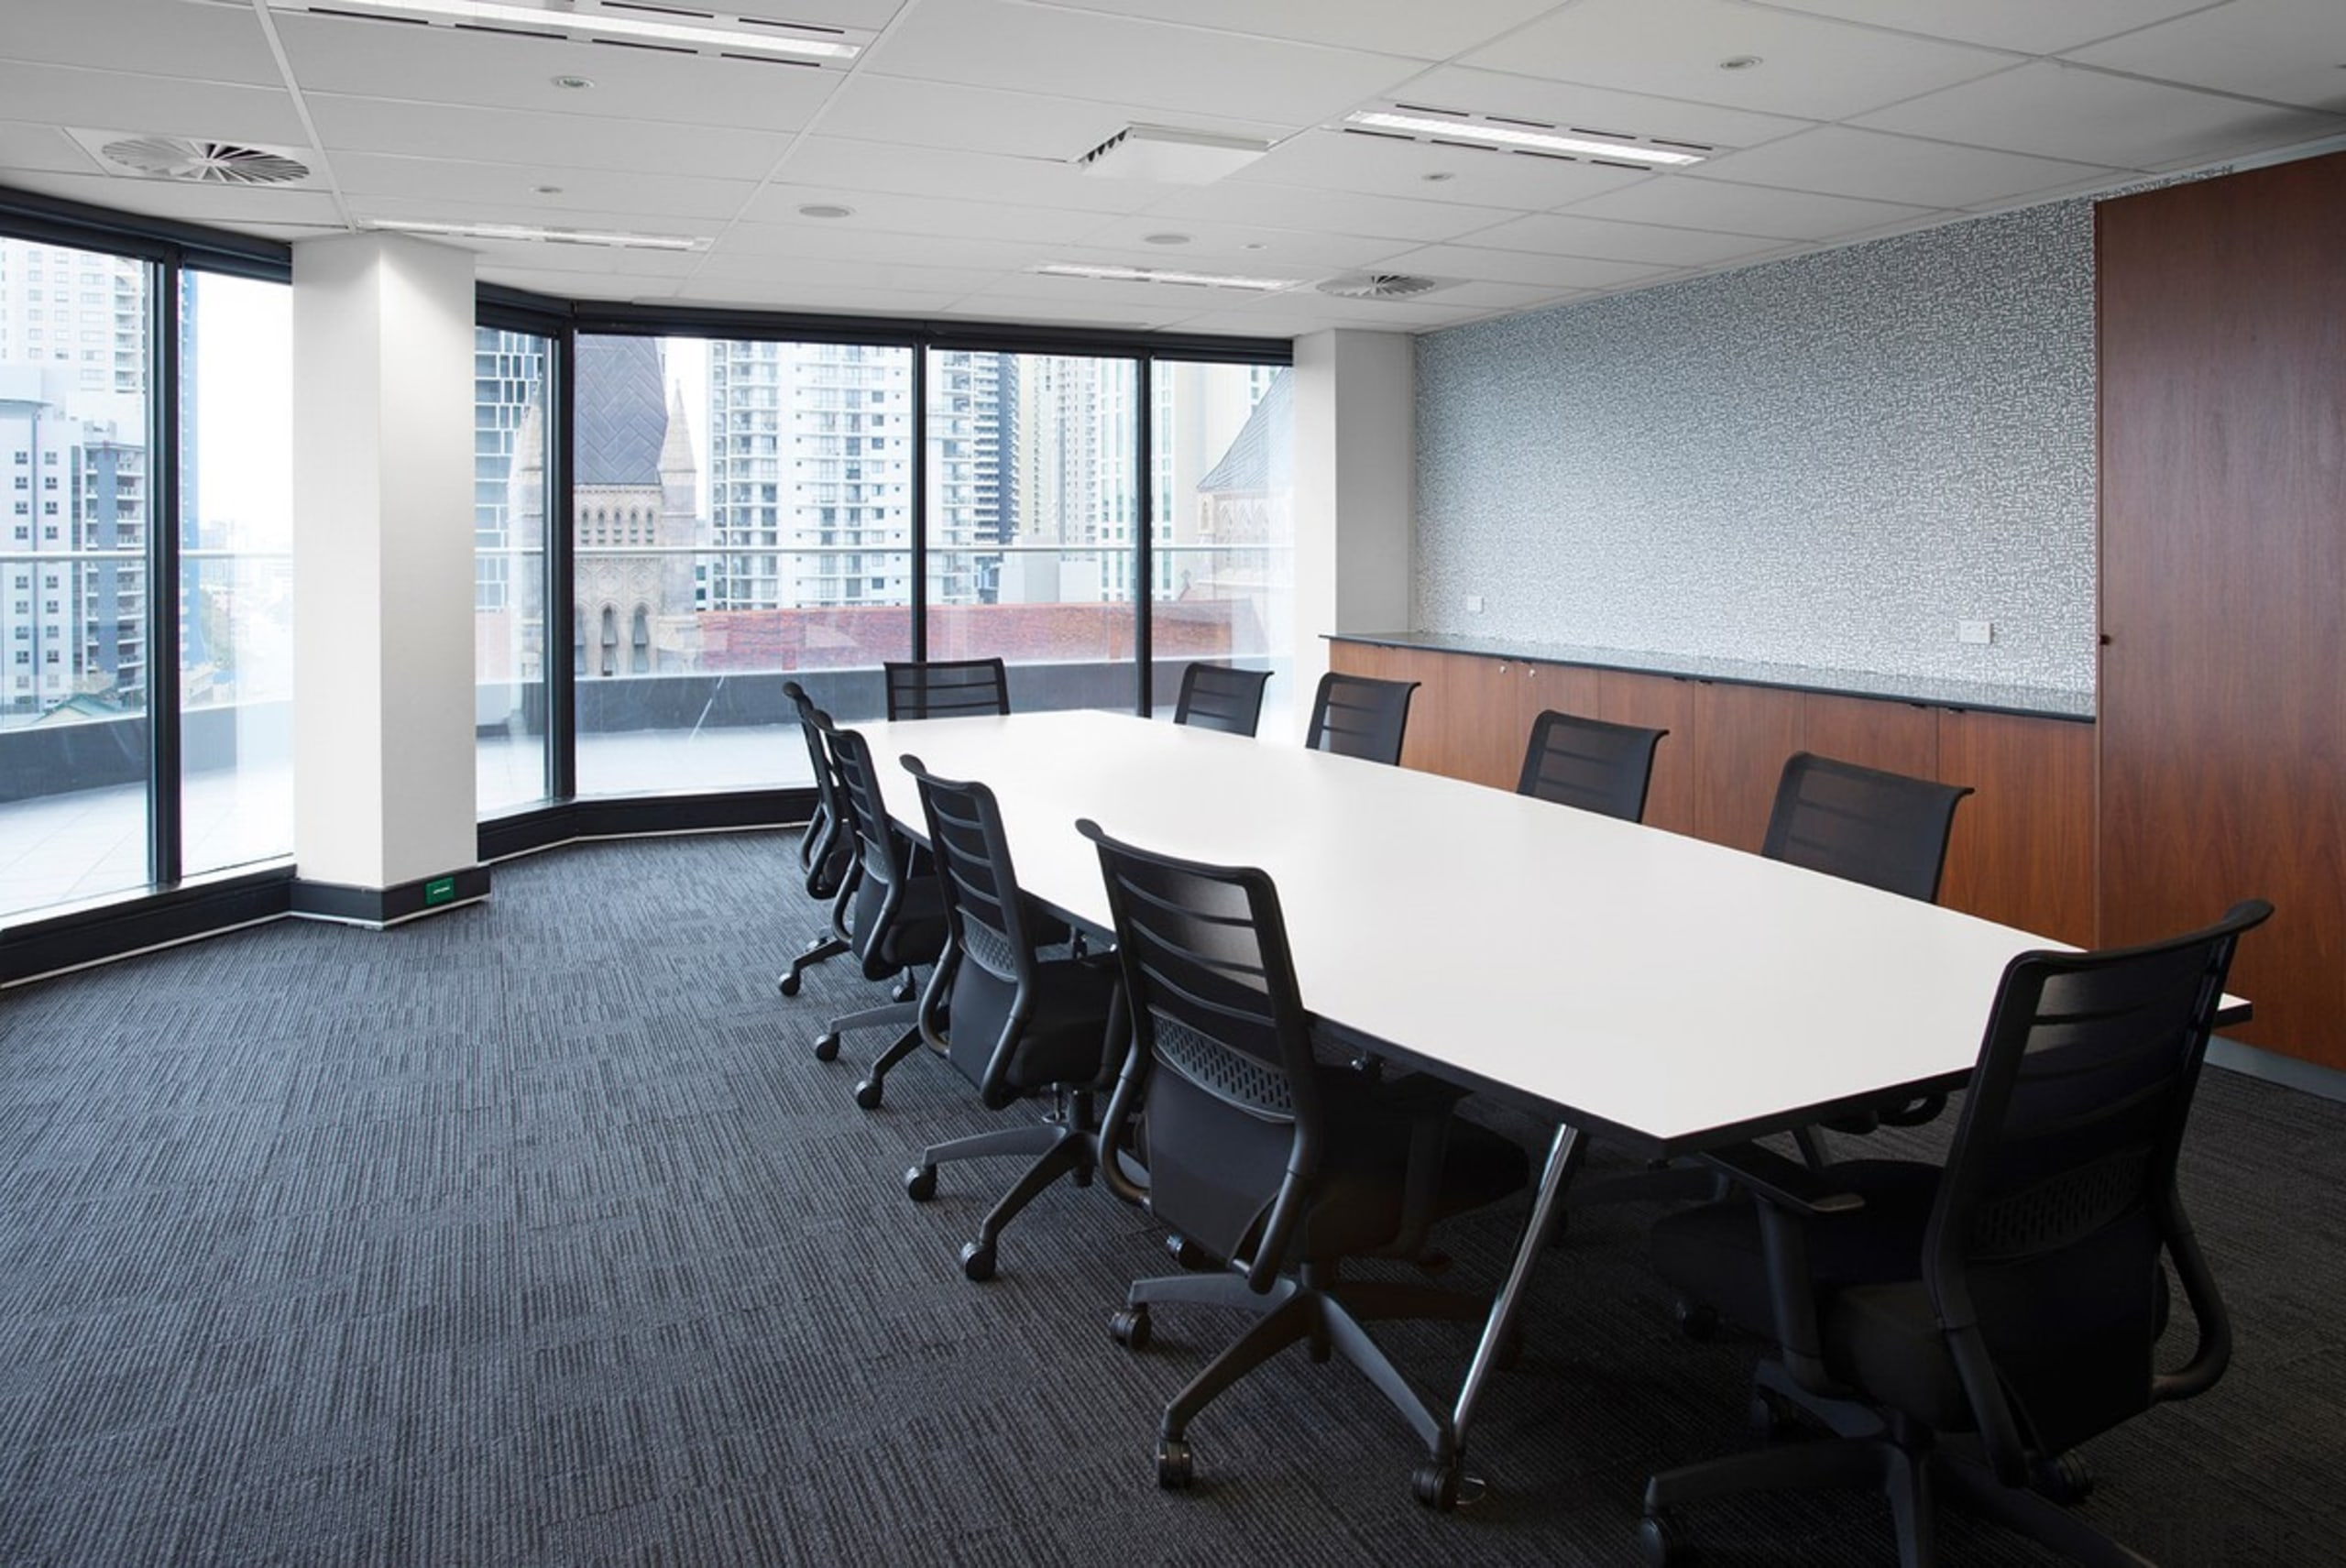 This long meeting room features expansive city views conference hall, floor, flooring, furniture, interior design, office, real estate, table, gray, white, black